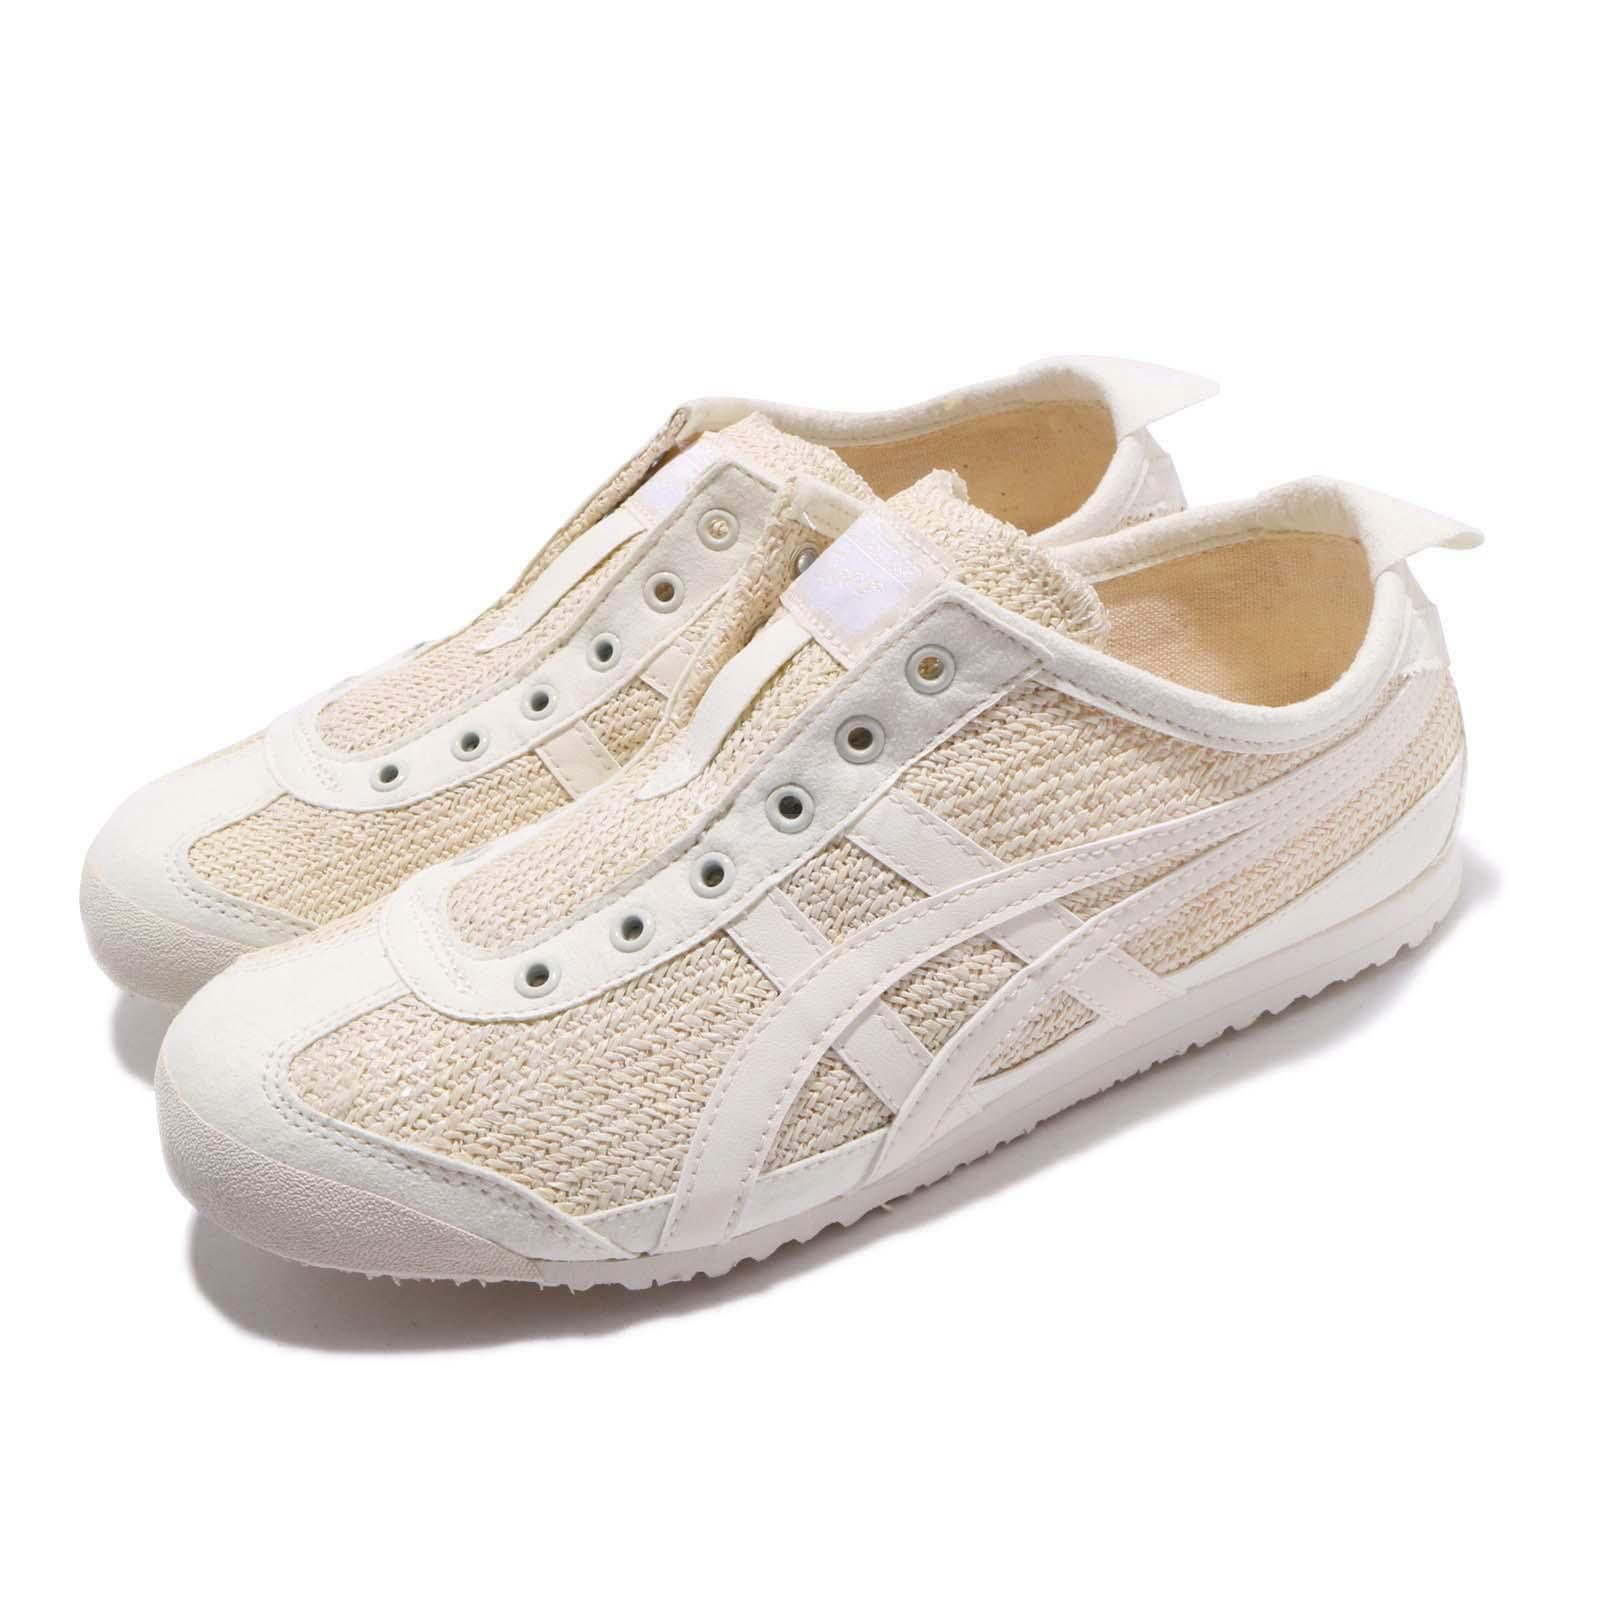 finest selection 43aa3 c945e Details about Asics Onitsuka Tiger Mexico 66 Slip On Cream Women Shoes  Sneakers 1182A046-101